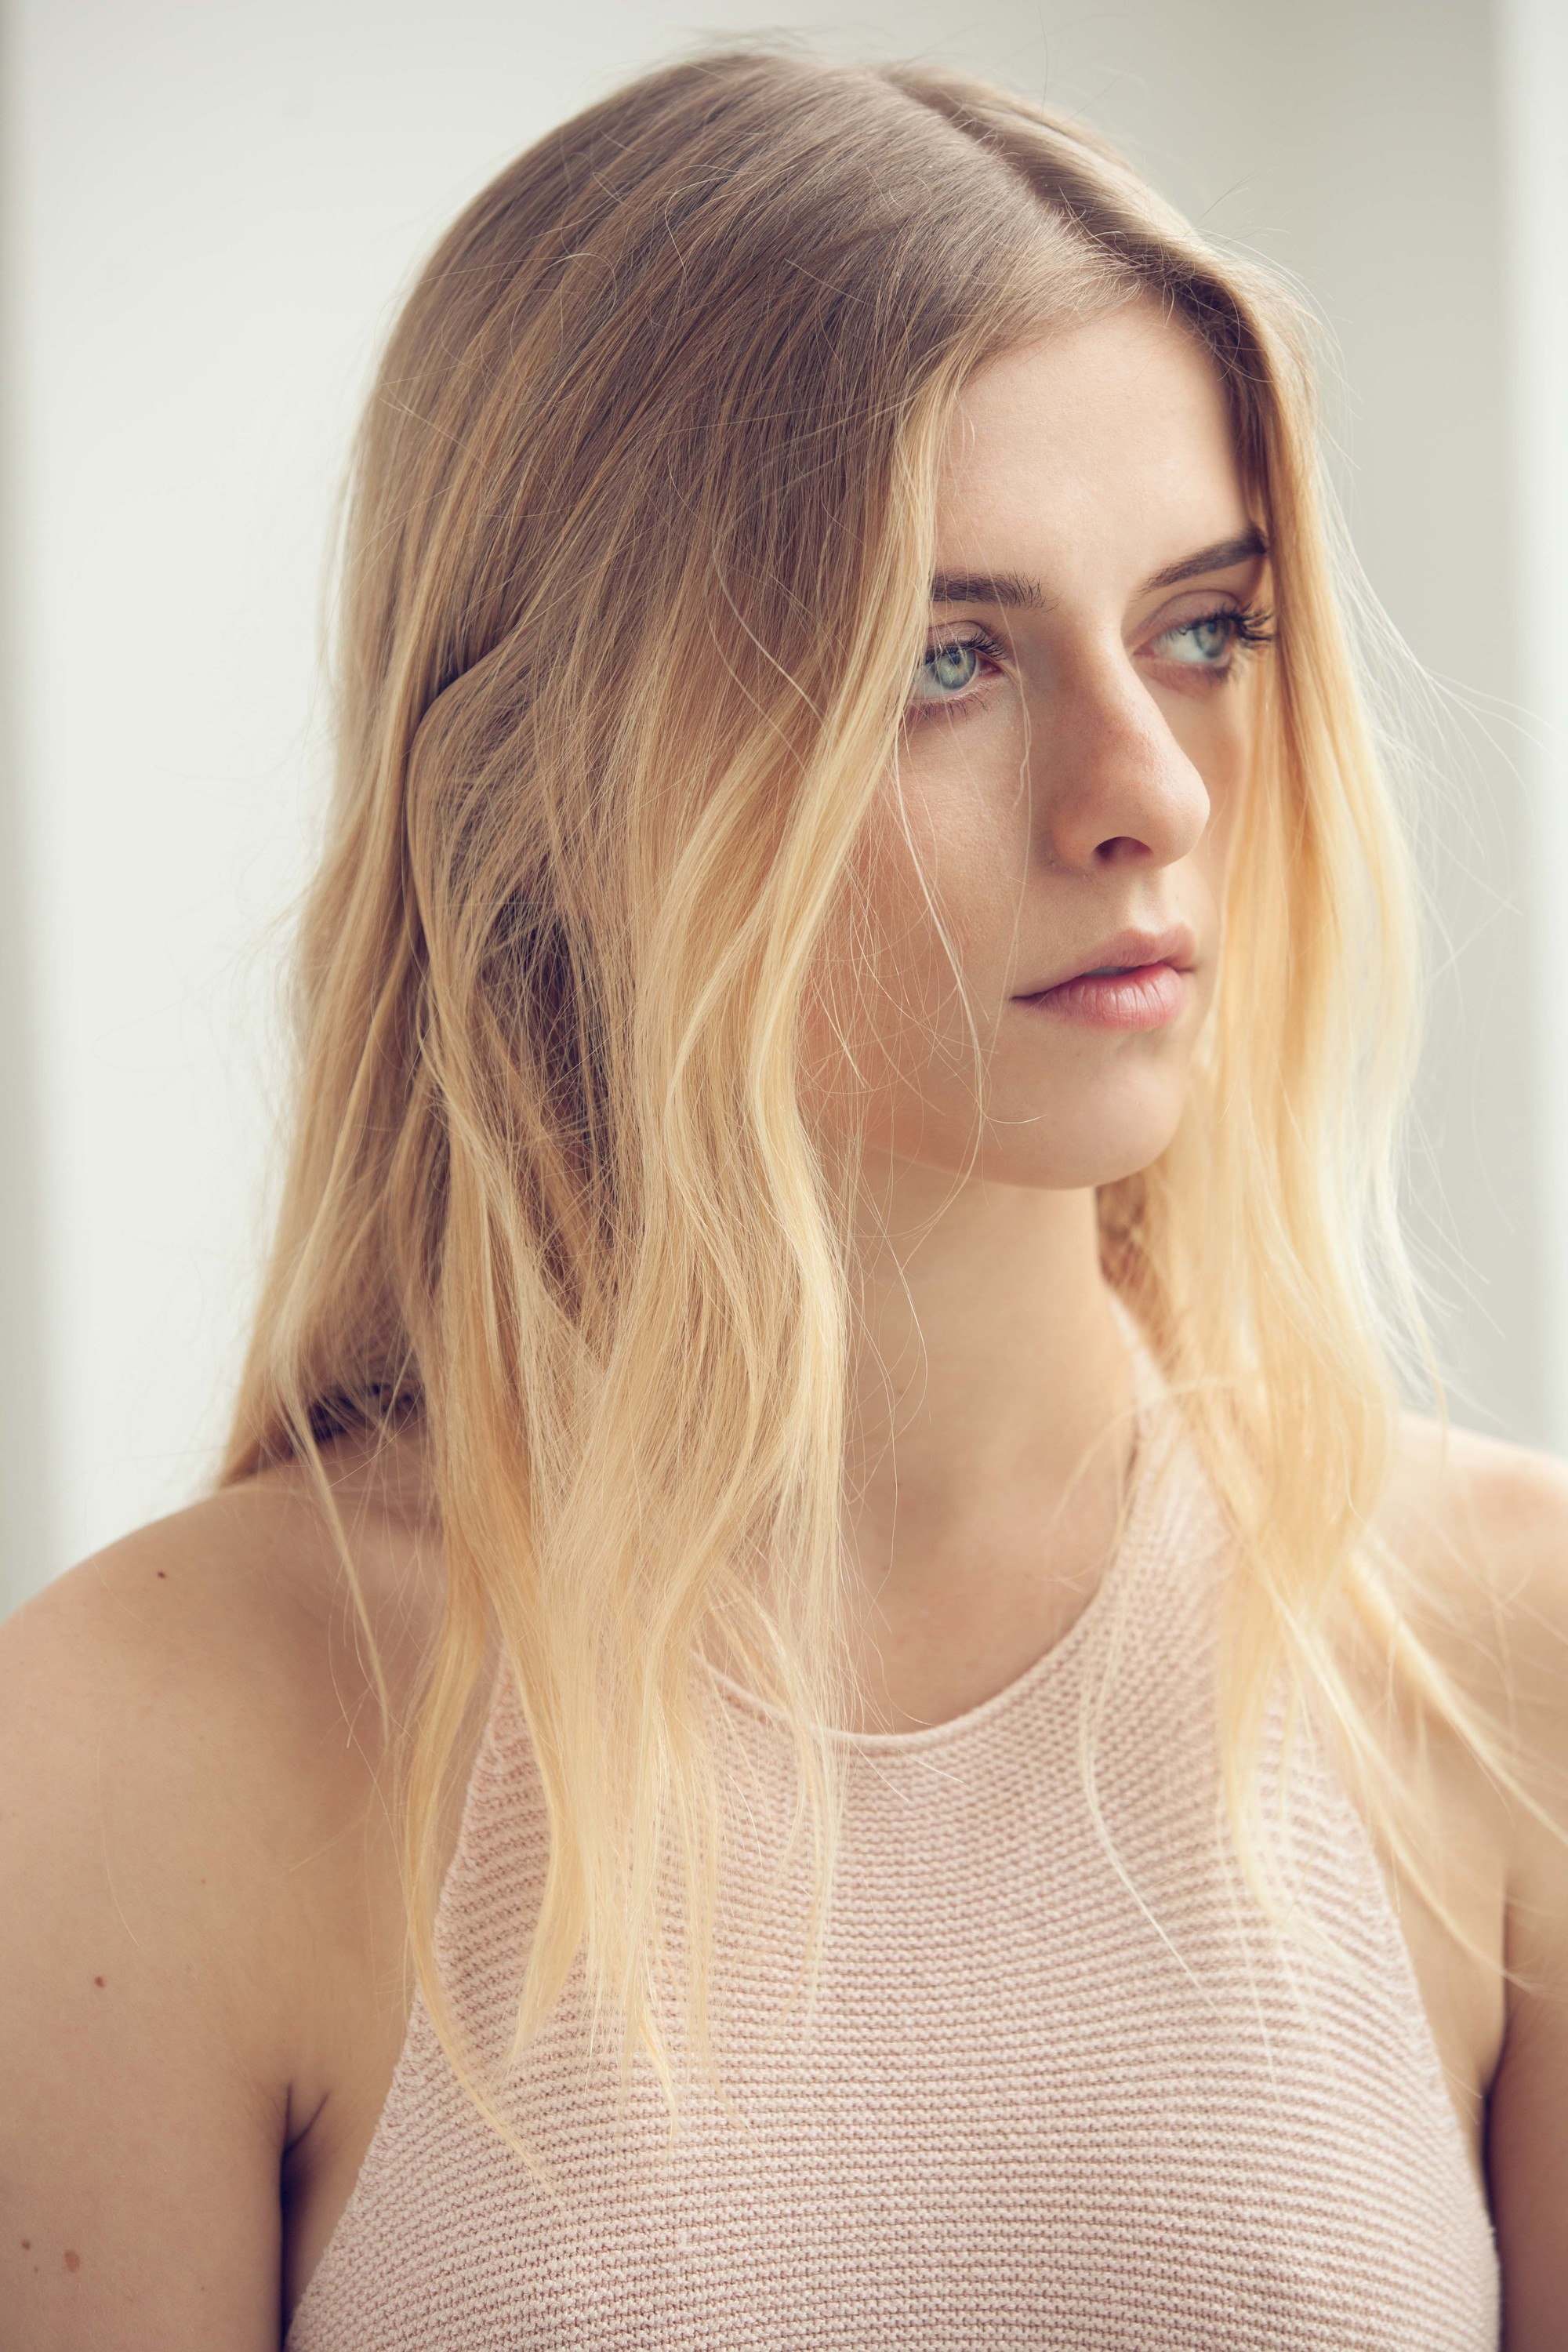 A beachy blonde Spring Ombre looks natural and effortless.